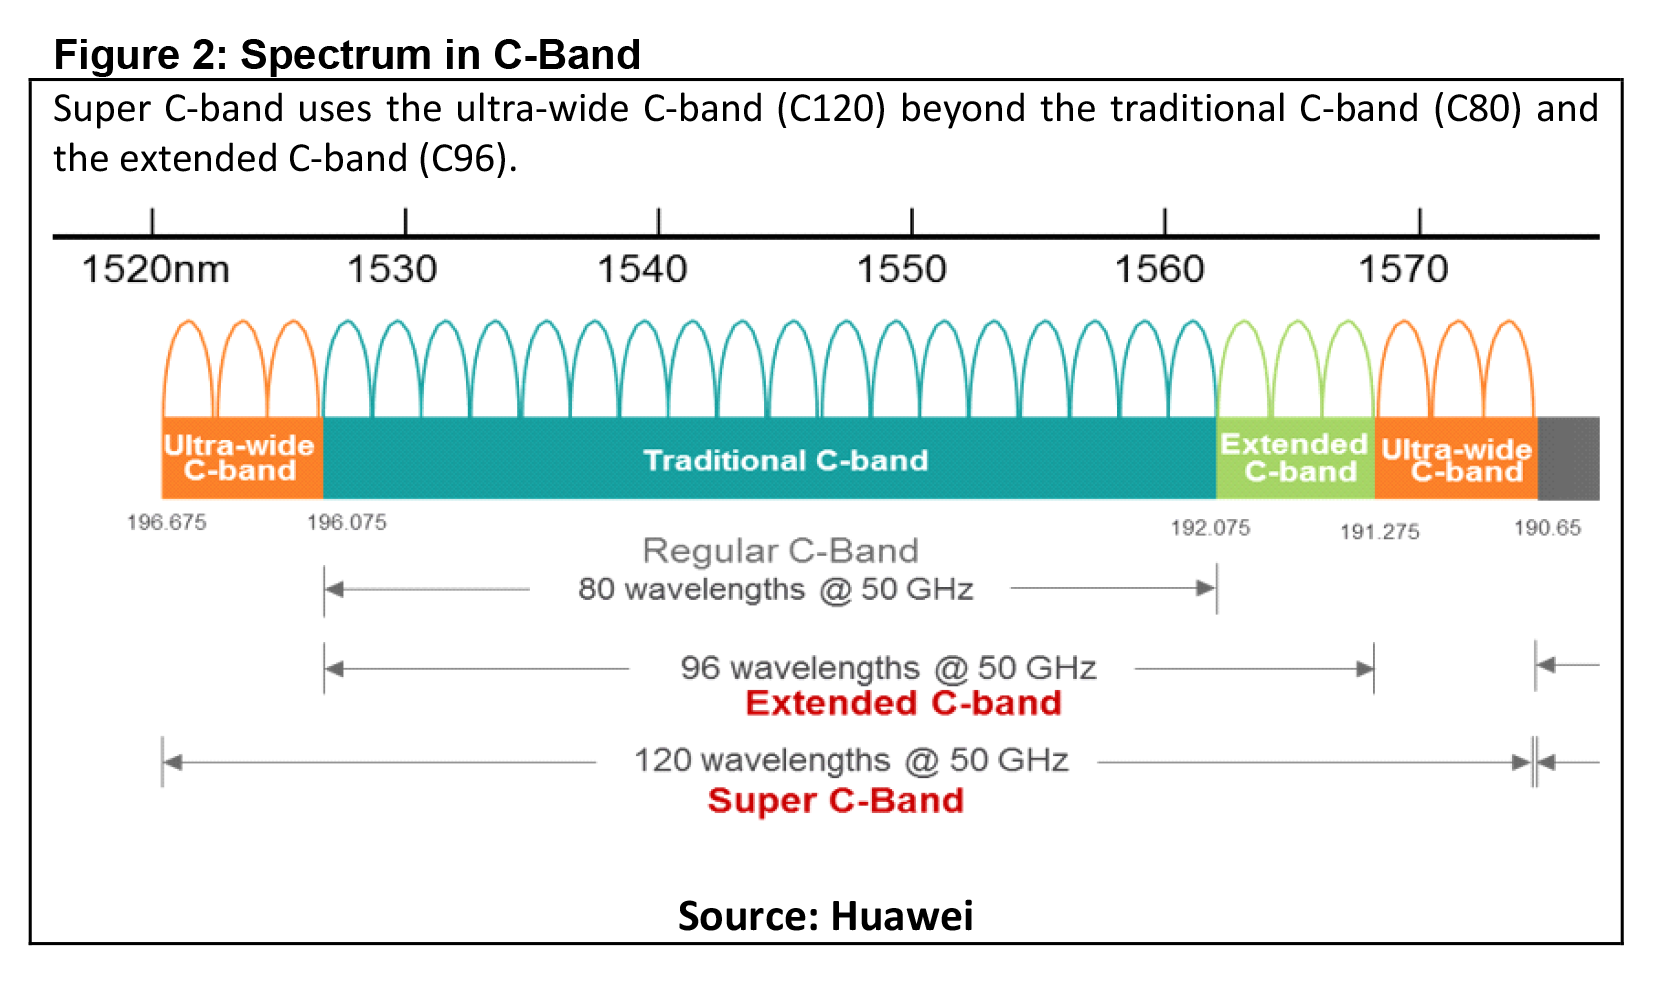 Huawei Spectrum in C-Band